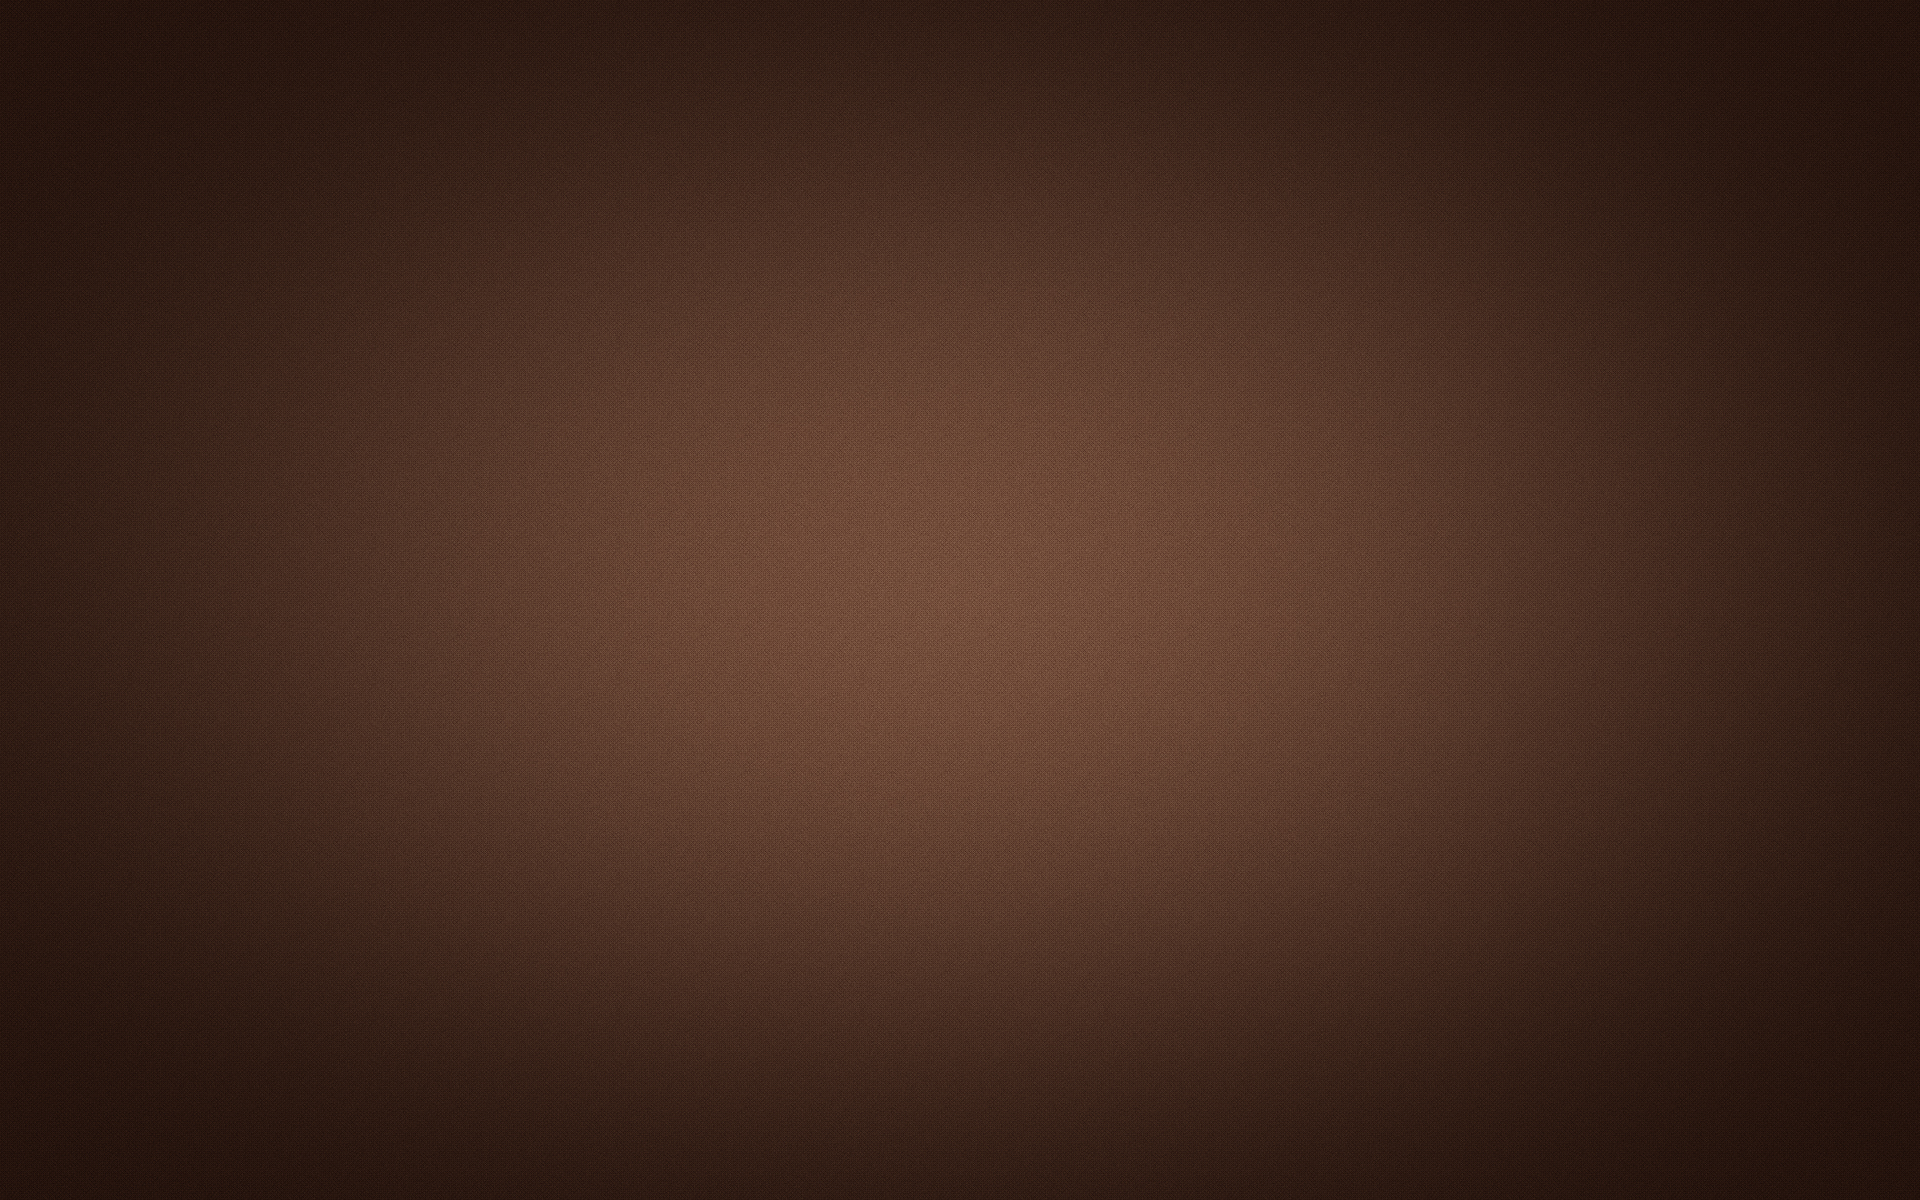 Free Brown Background